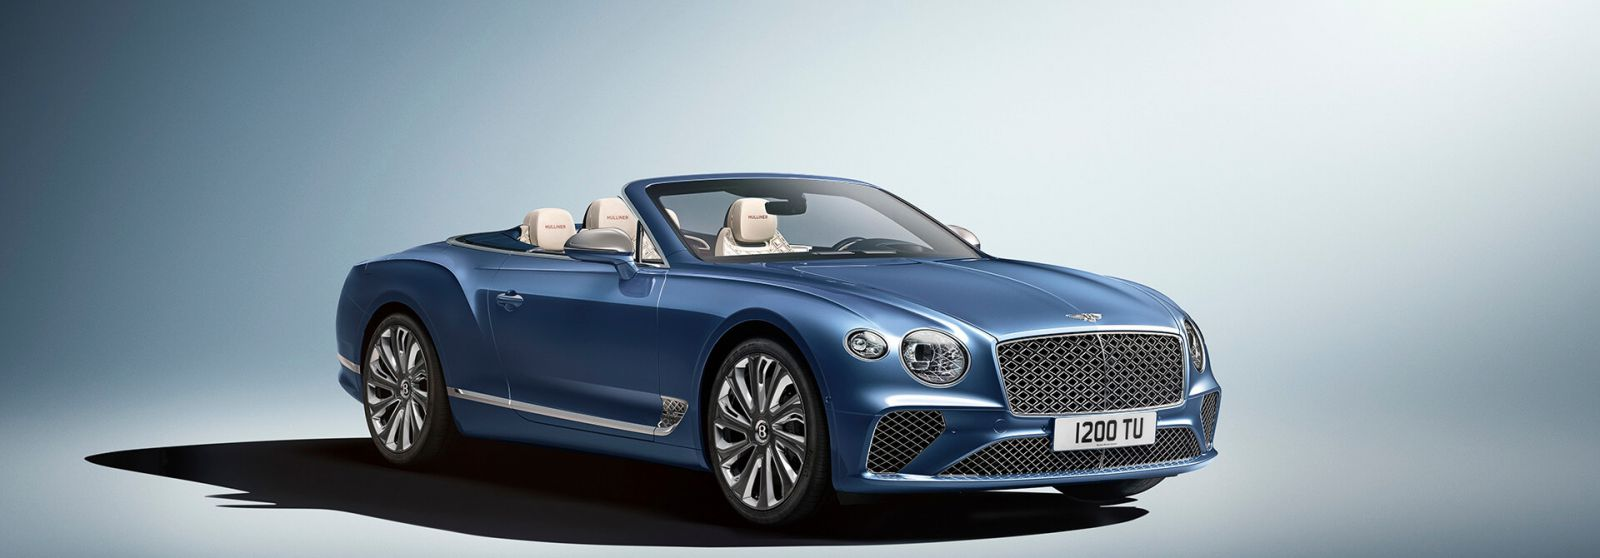 NEW CONTINENTAL GT MULLINER CONVERTIBLE: DEFINING OPEN TOP LUXURY